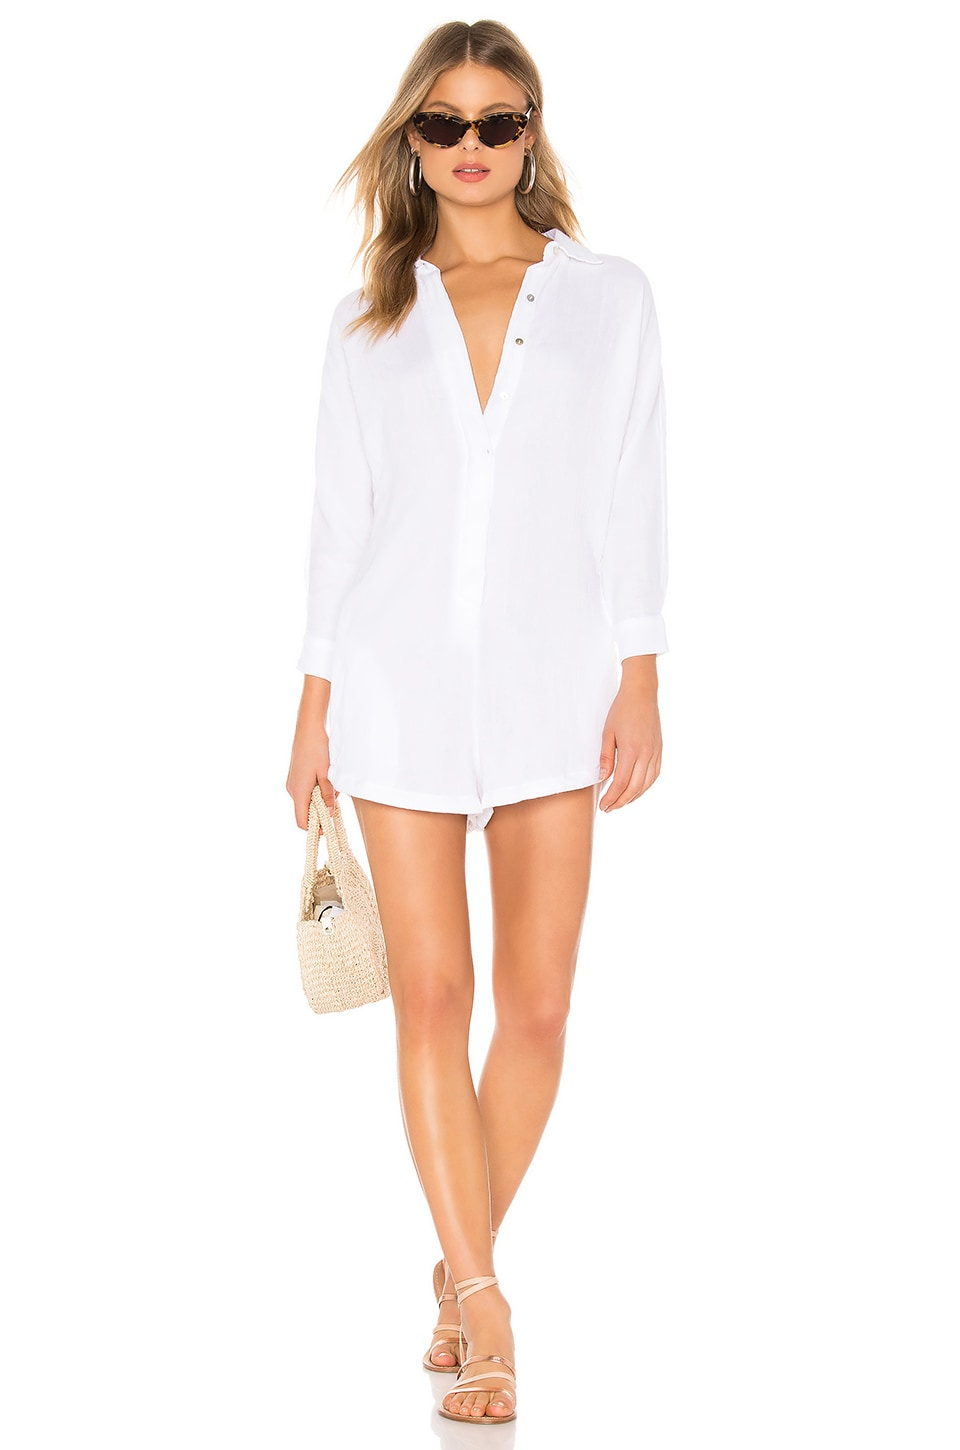 Acacia Swimwear Kapaa Romper in White